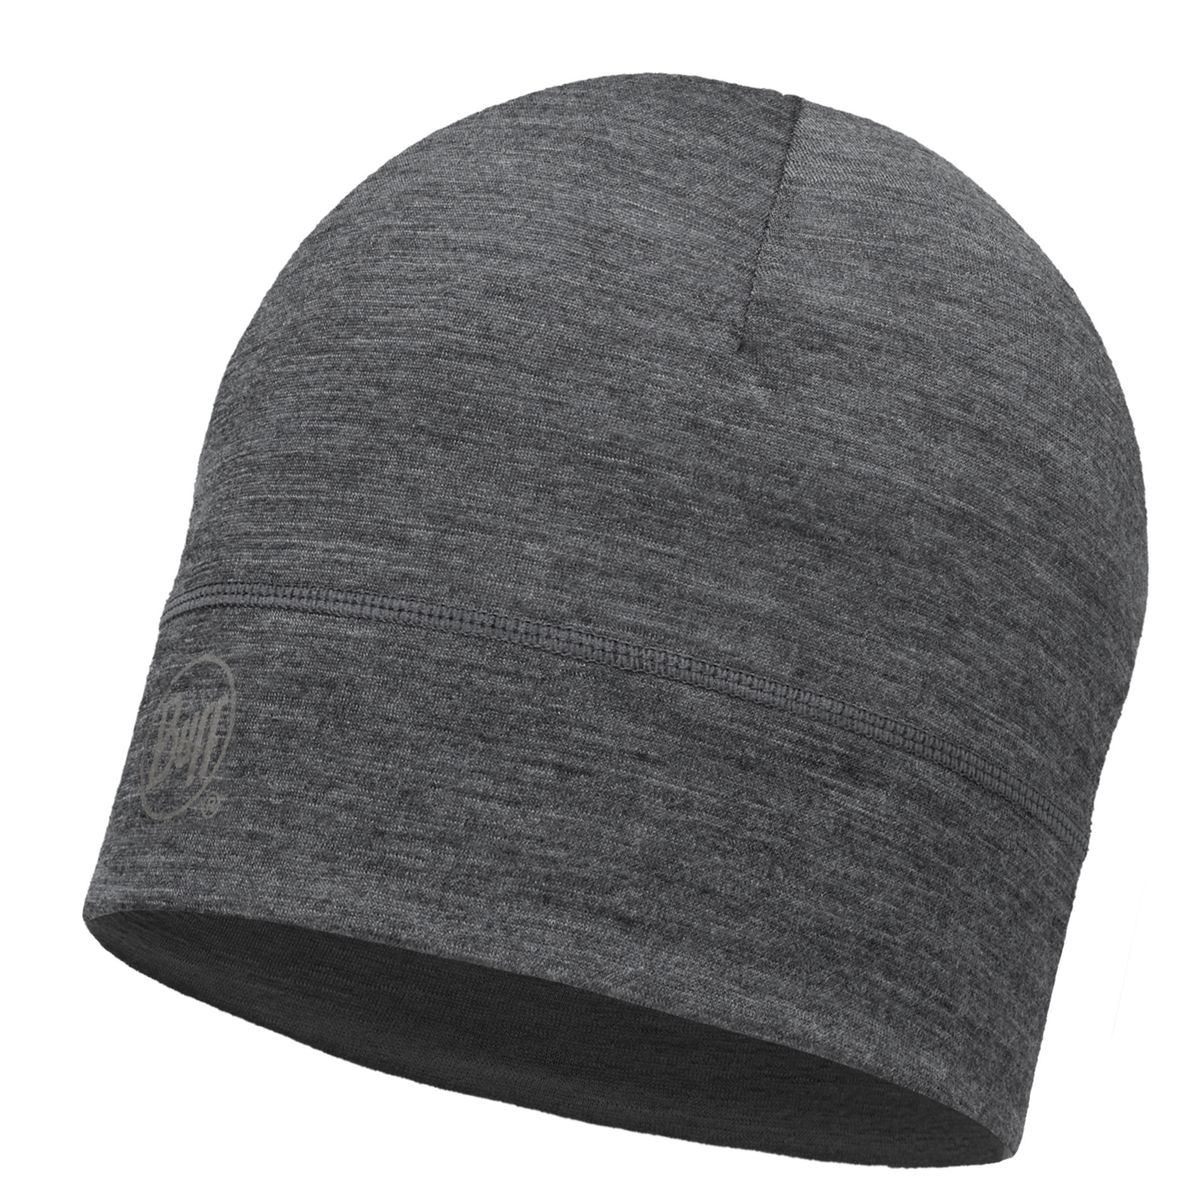 MERINO WOOL 1 LAYER hat